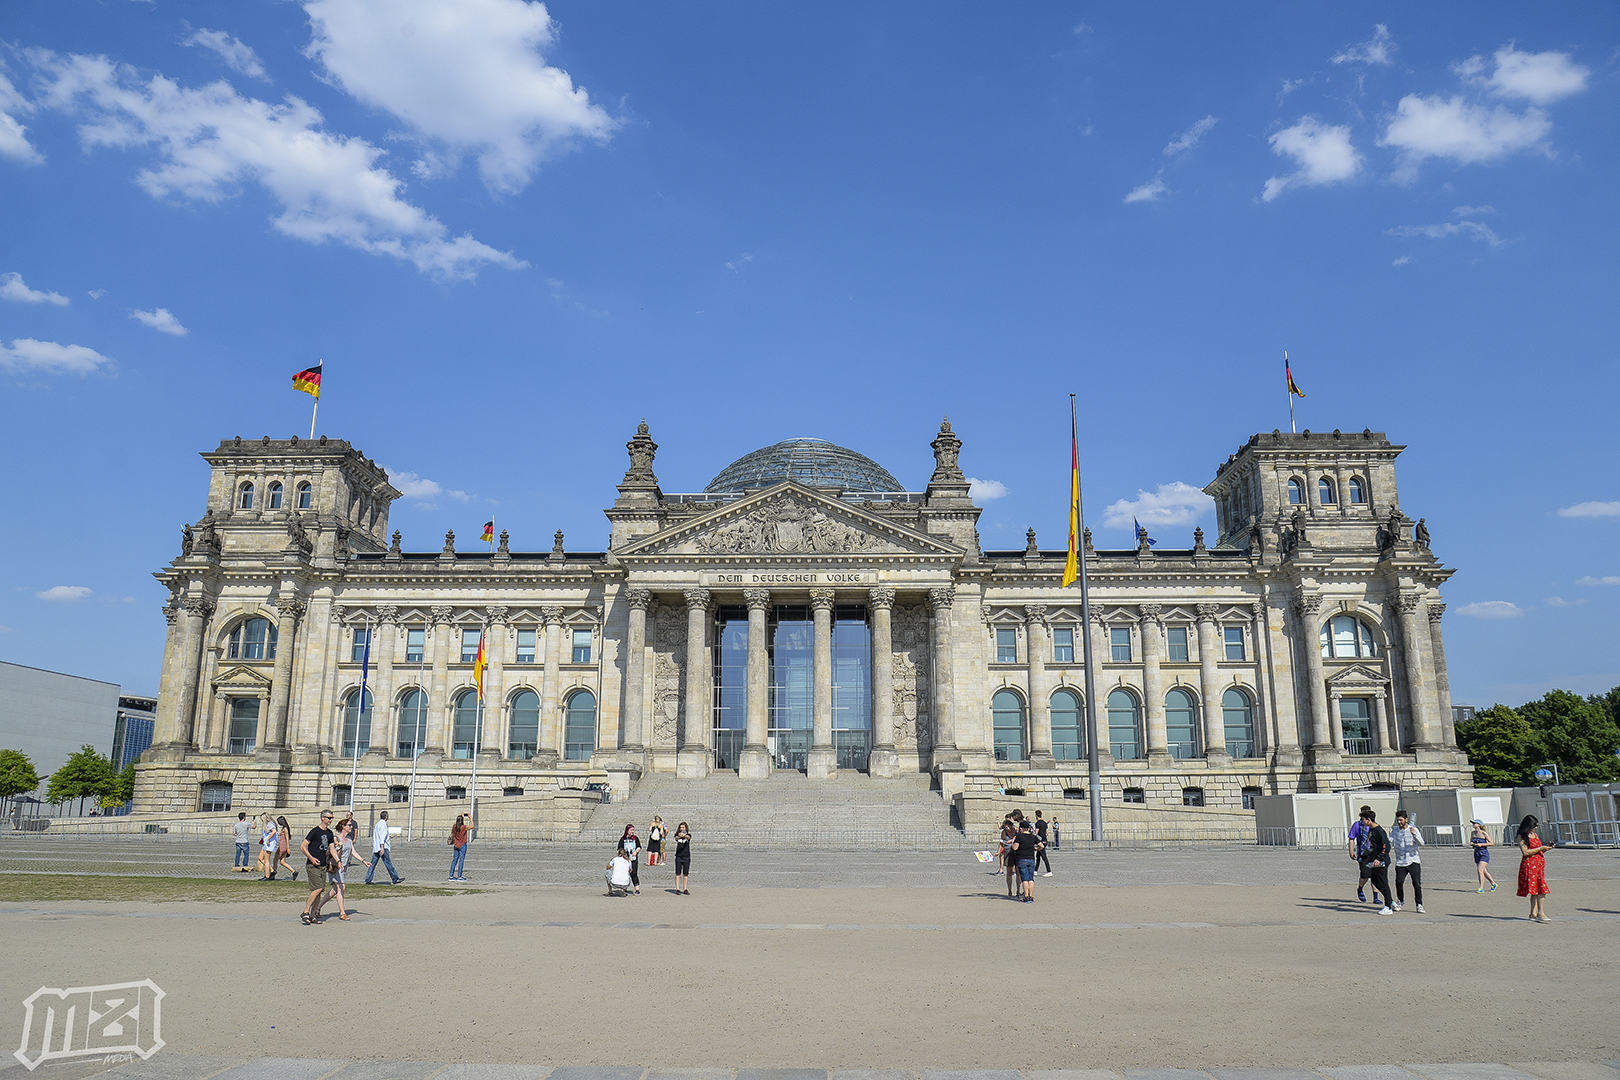 German Parliment